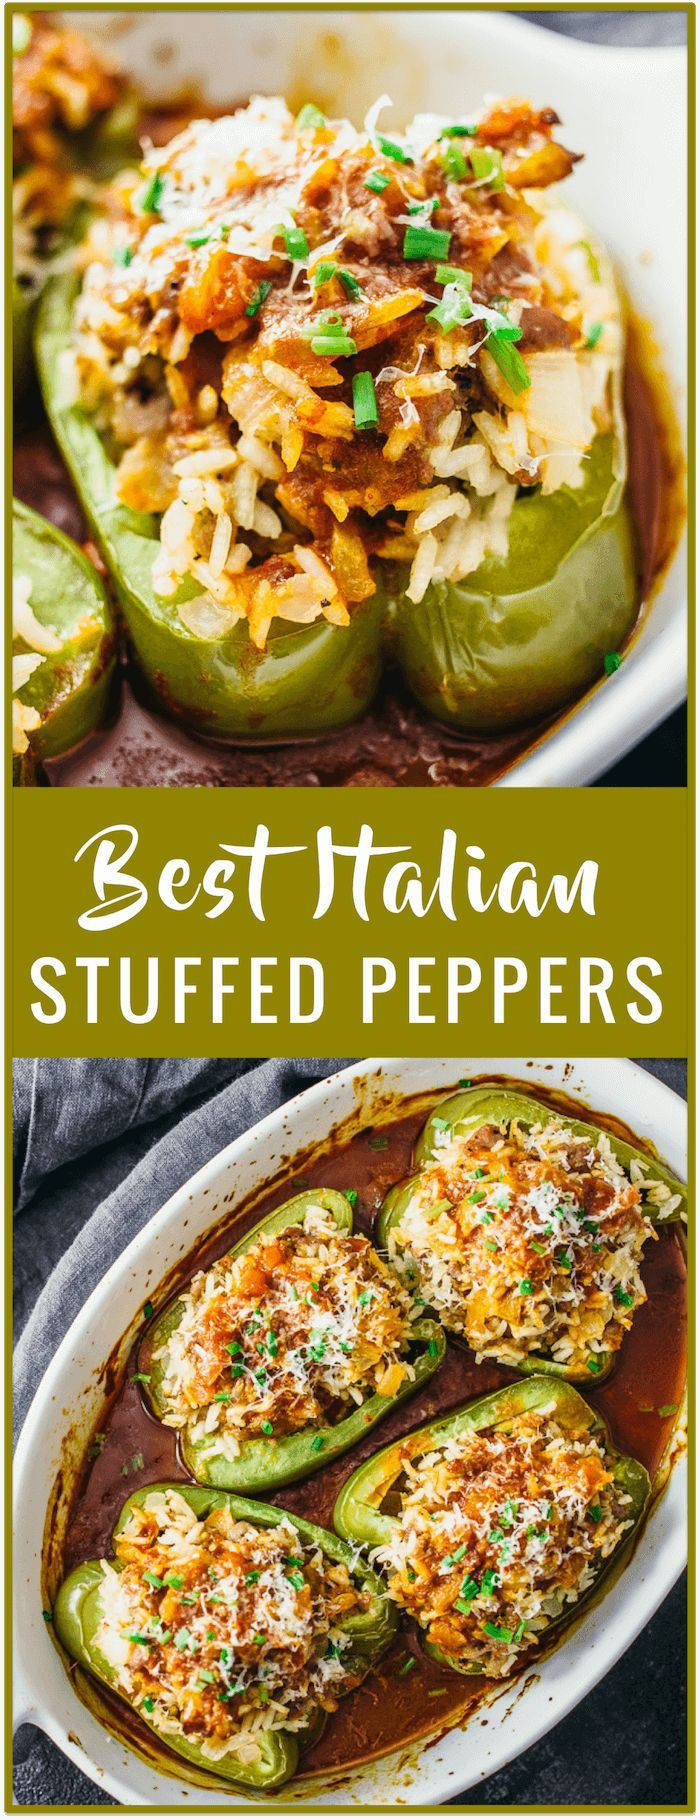 recipe: stove top stuffed peppers in tomato sauce [21]